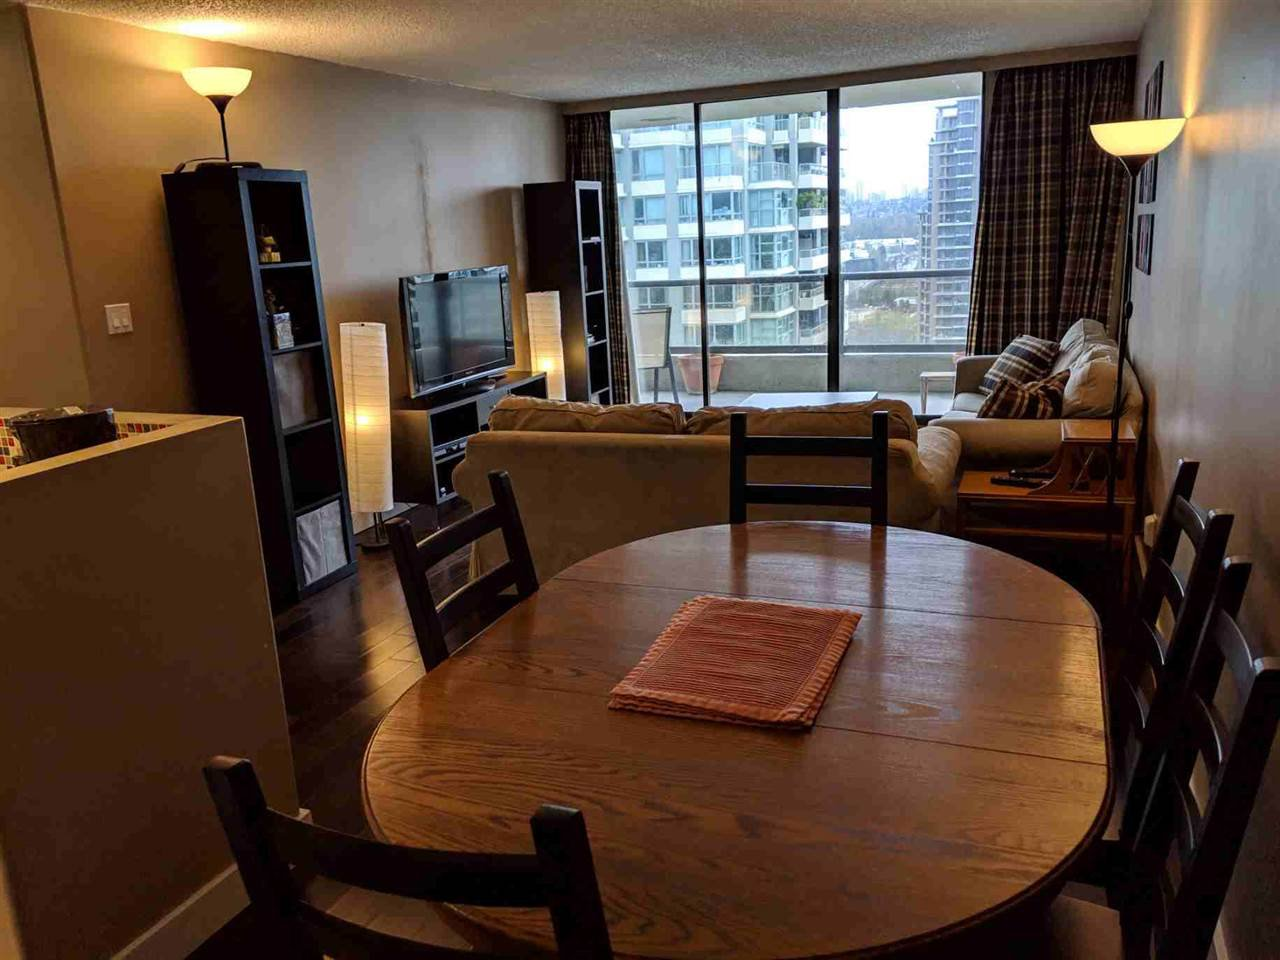 """Photo 7: Photos: 2206 4353 HALIFAX Street in Burnaby: Brentwood Park Condo for sale in """"BRENTWOOD GARDENS"""" (Burnaby North)  : MLS®# R2358209"""